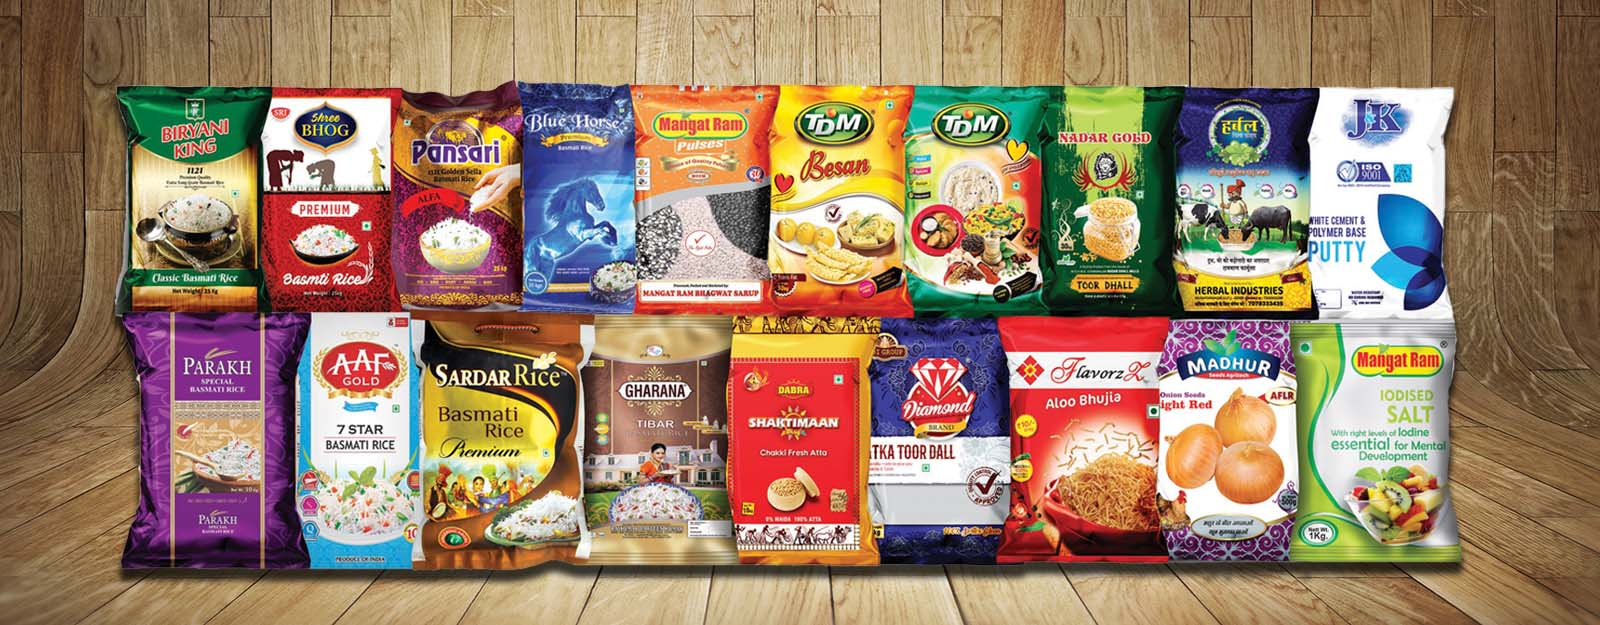 Giriraj Polymer Food Packaging Pouches Printed Bopp Bag Manufacturer Supplier In Delhi India